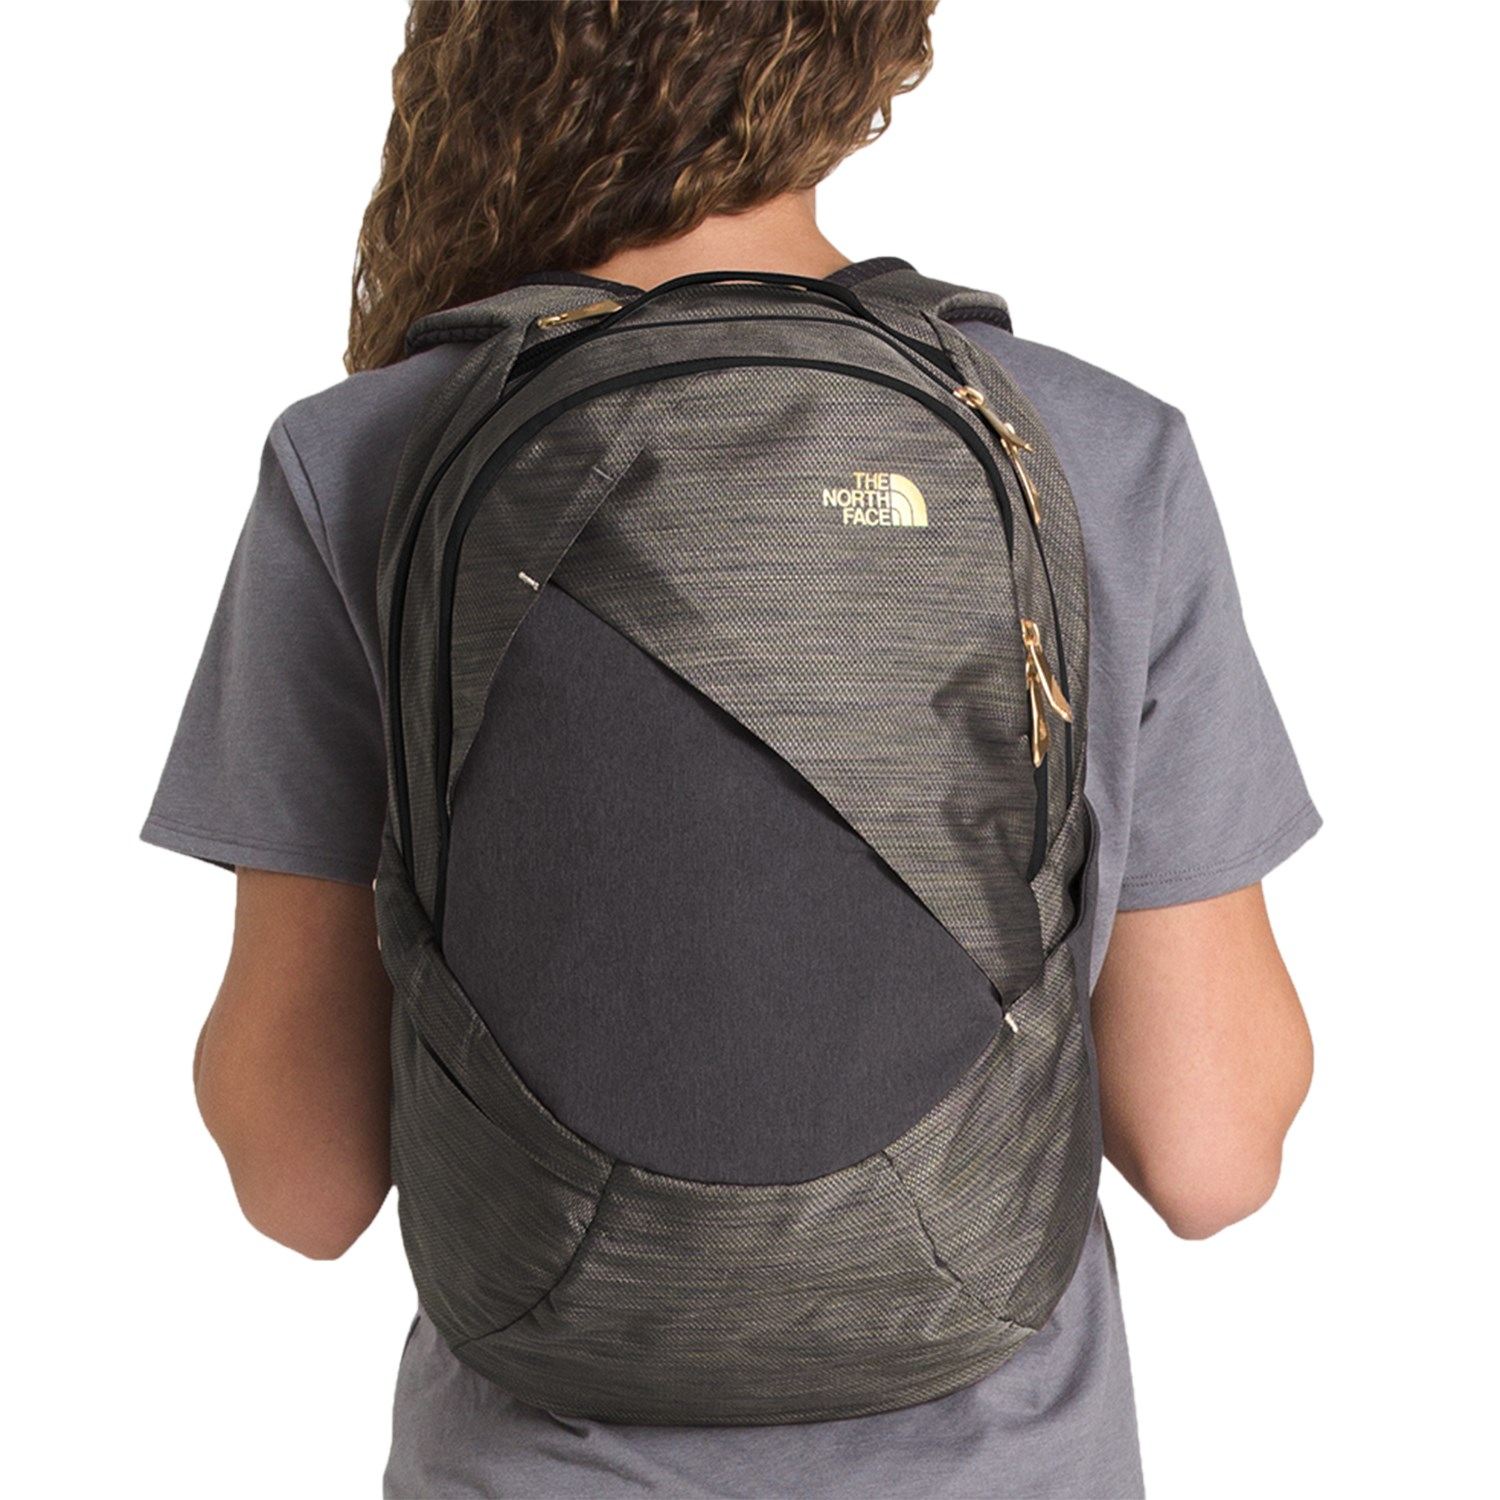 136da5695 North Face Womens Isabella Backpack Sale - CEAGESP